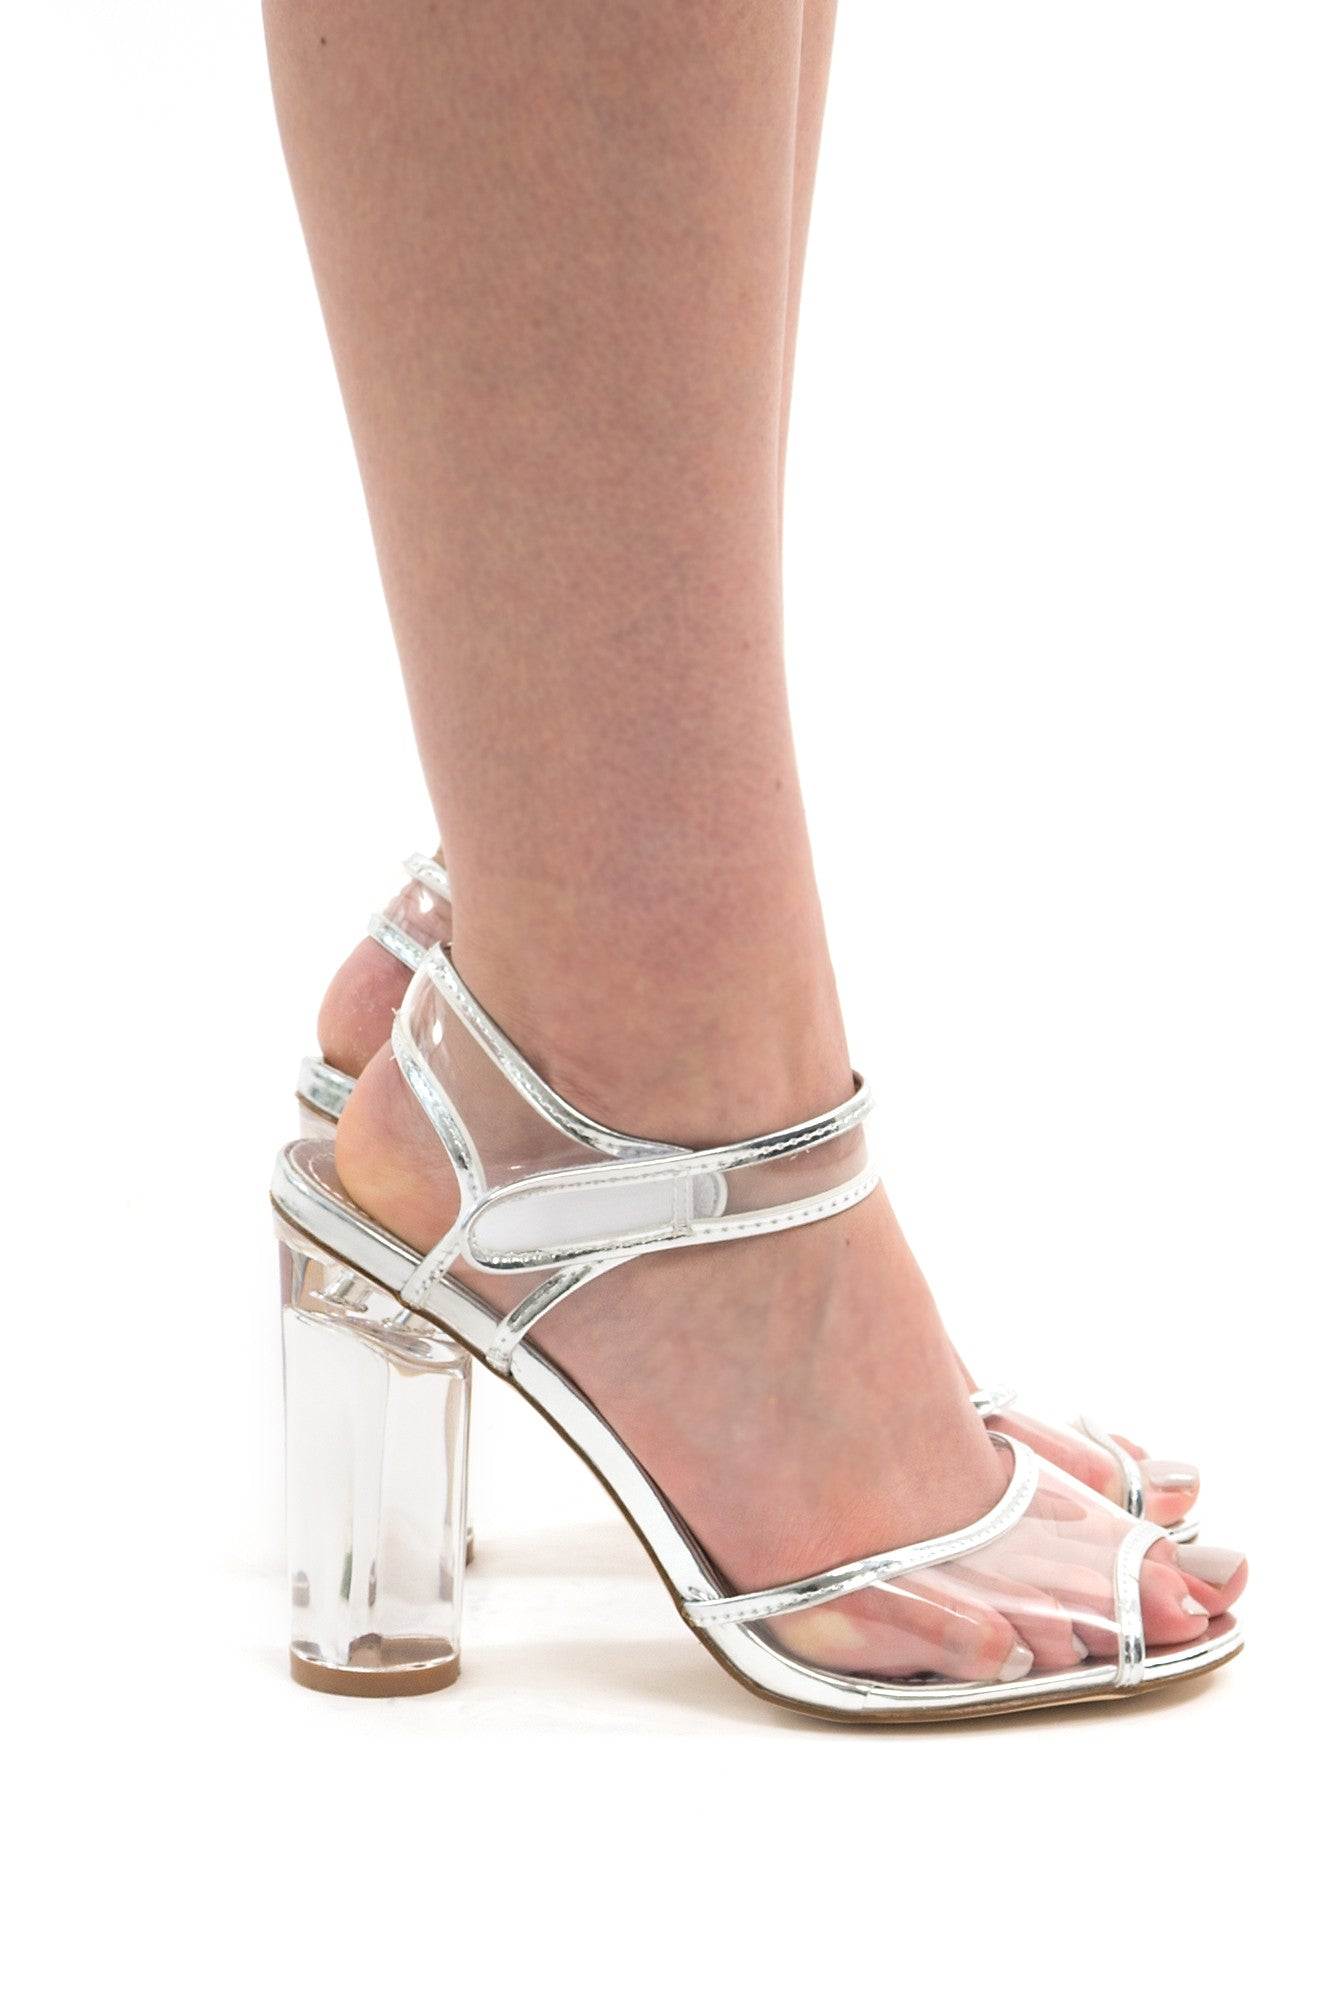 Clear Transparent Ankle Strap Silver Heels